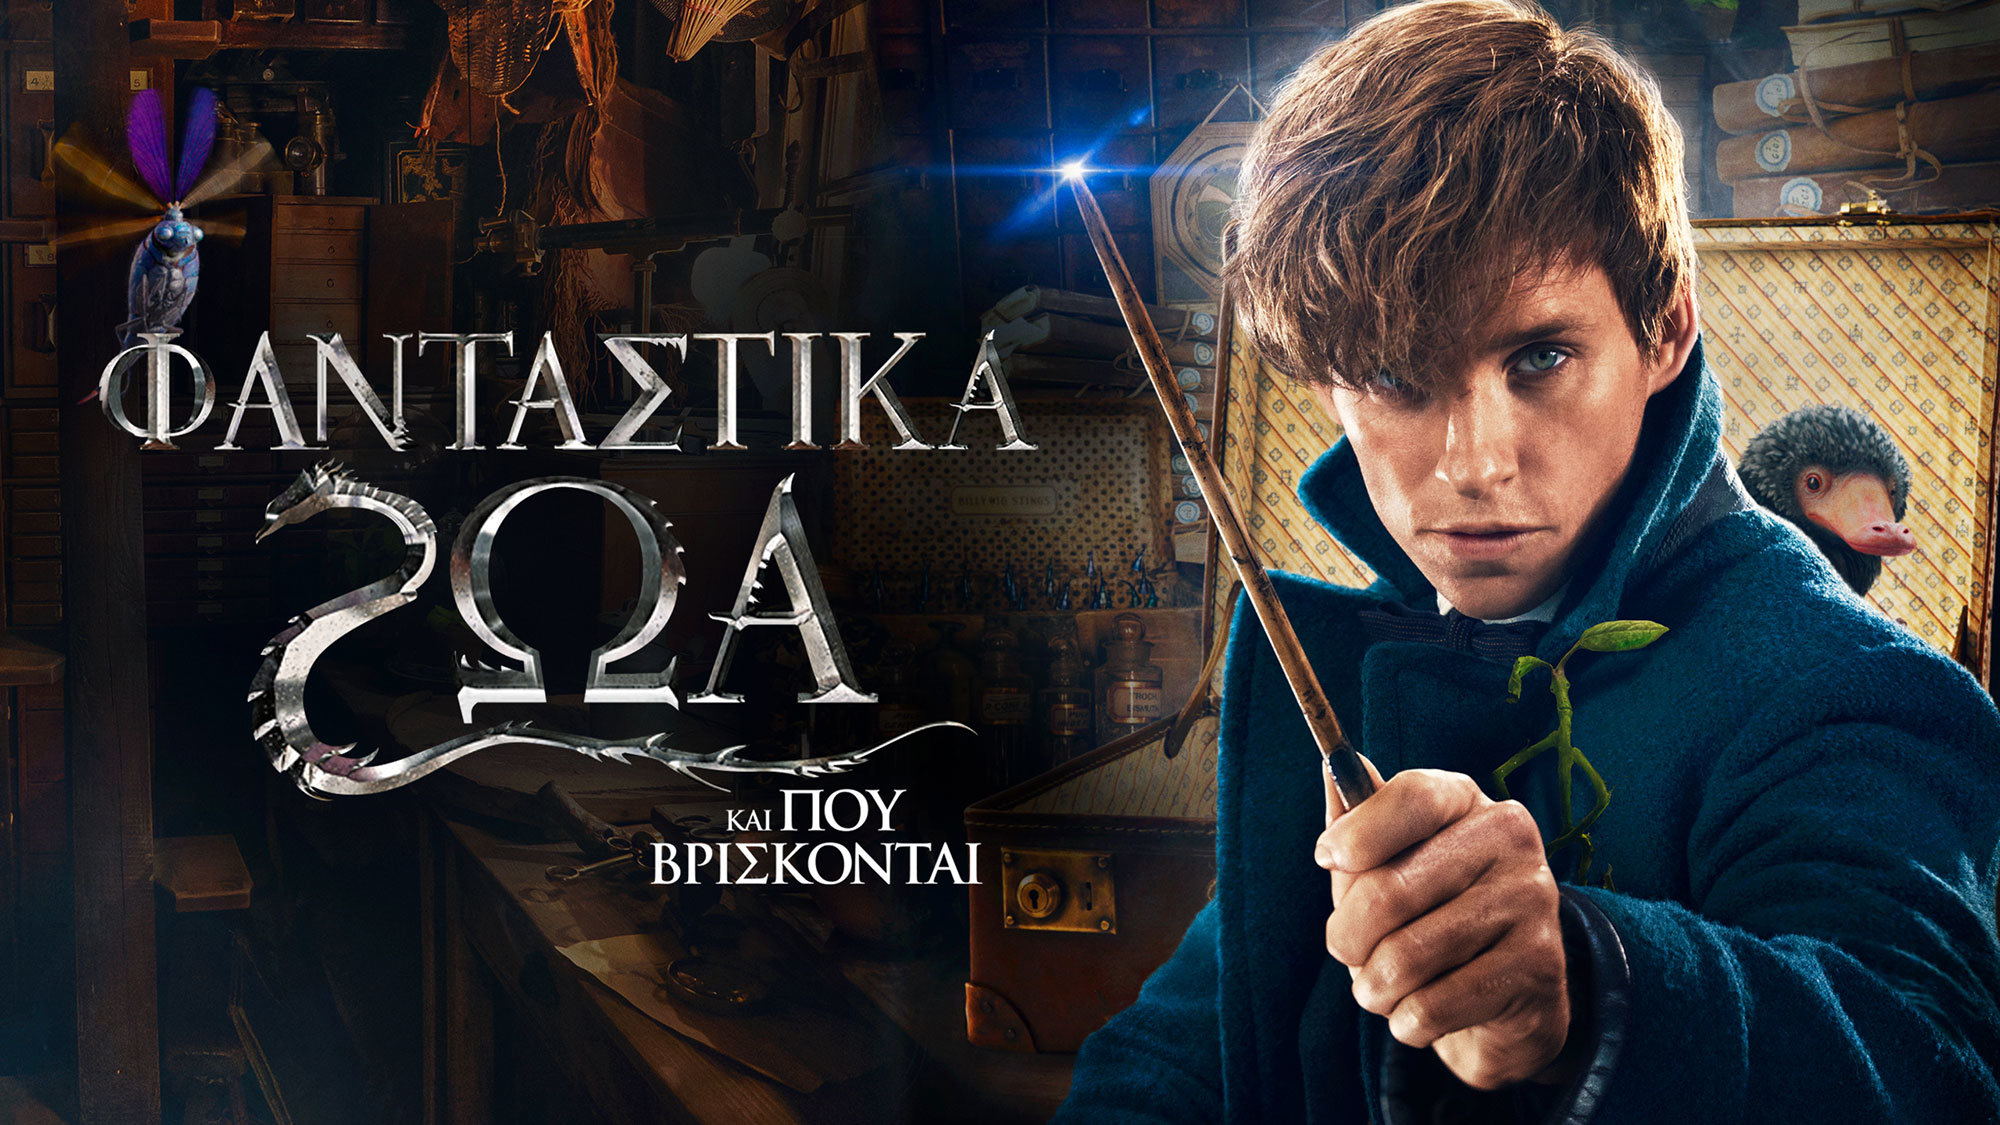 Fantastic Beasts and Where to Find Them Greek title design for Netflix